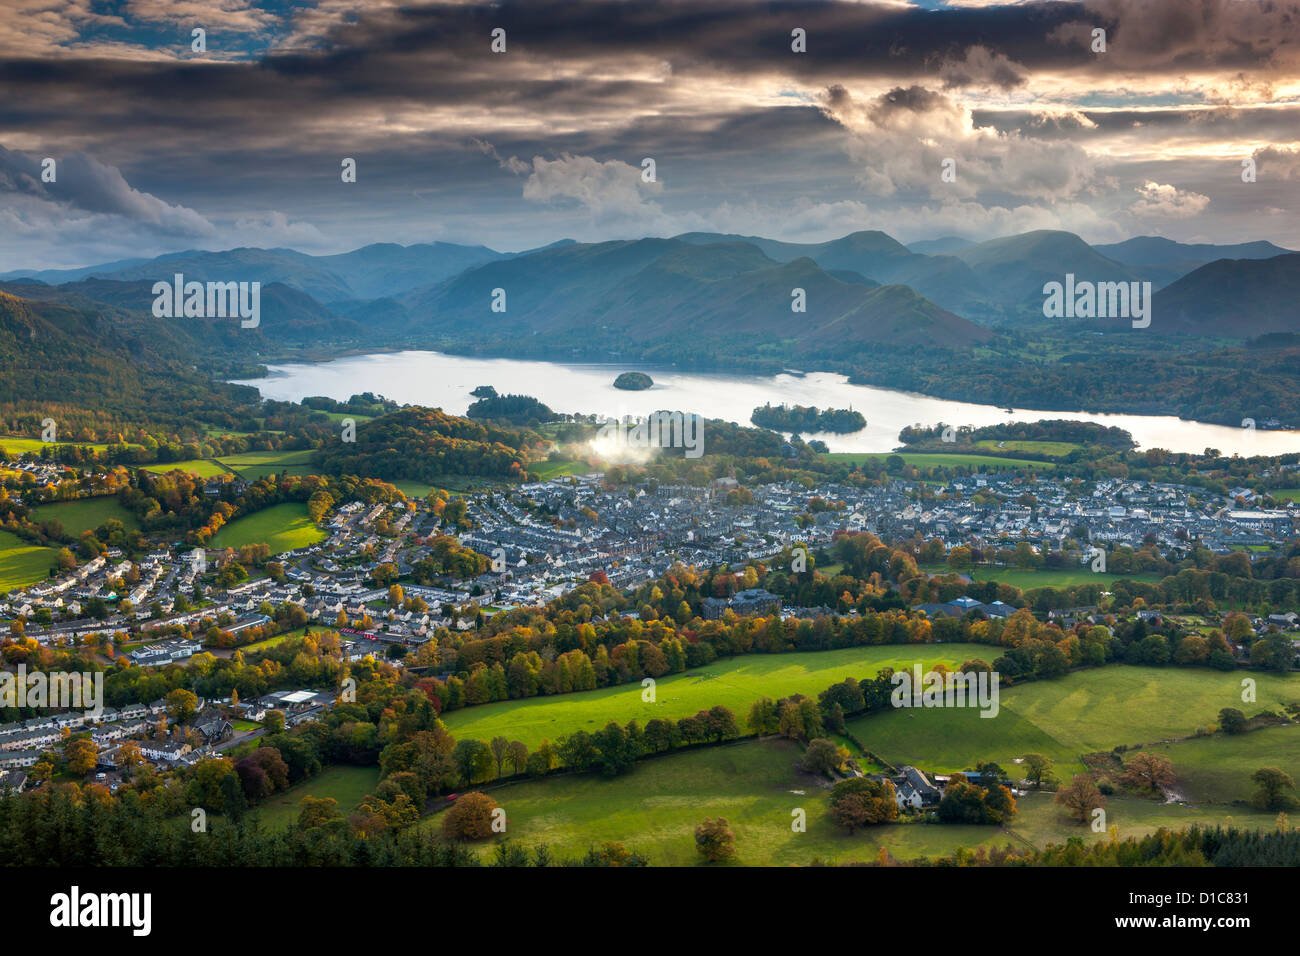 View over Keswick and Derwent Water from Latrigg summit, Lake District National Park. - Stock Image